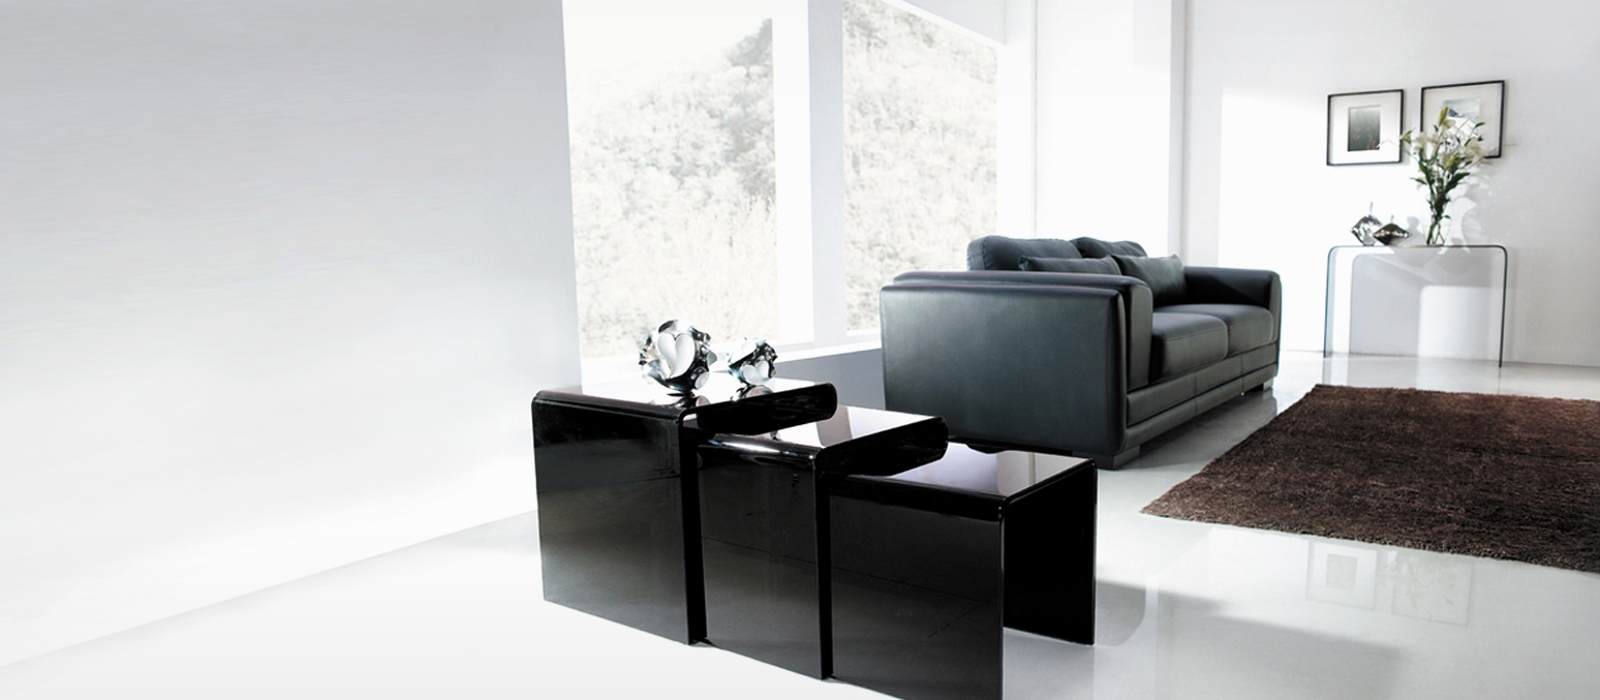 Black Nested Glass Tables - Glass Tables Online